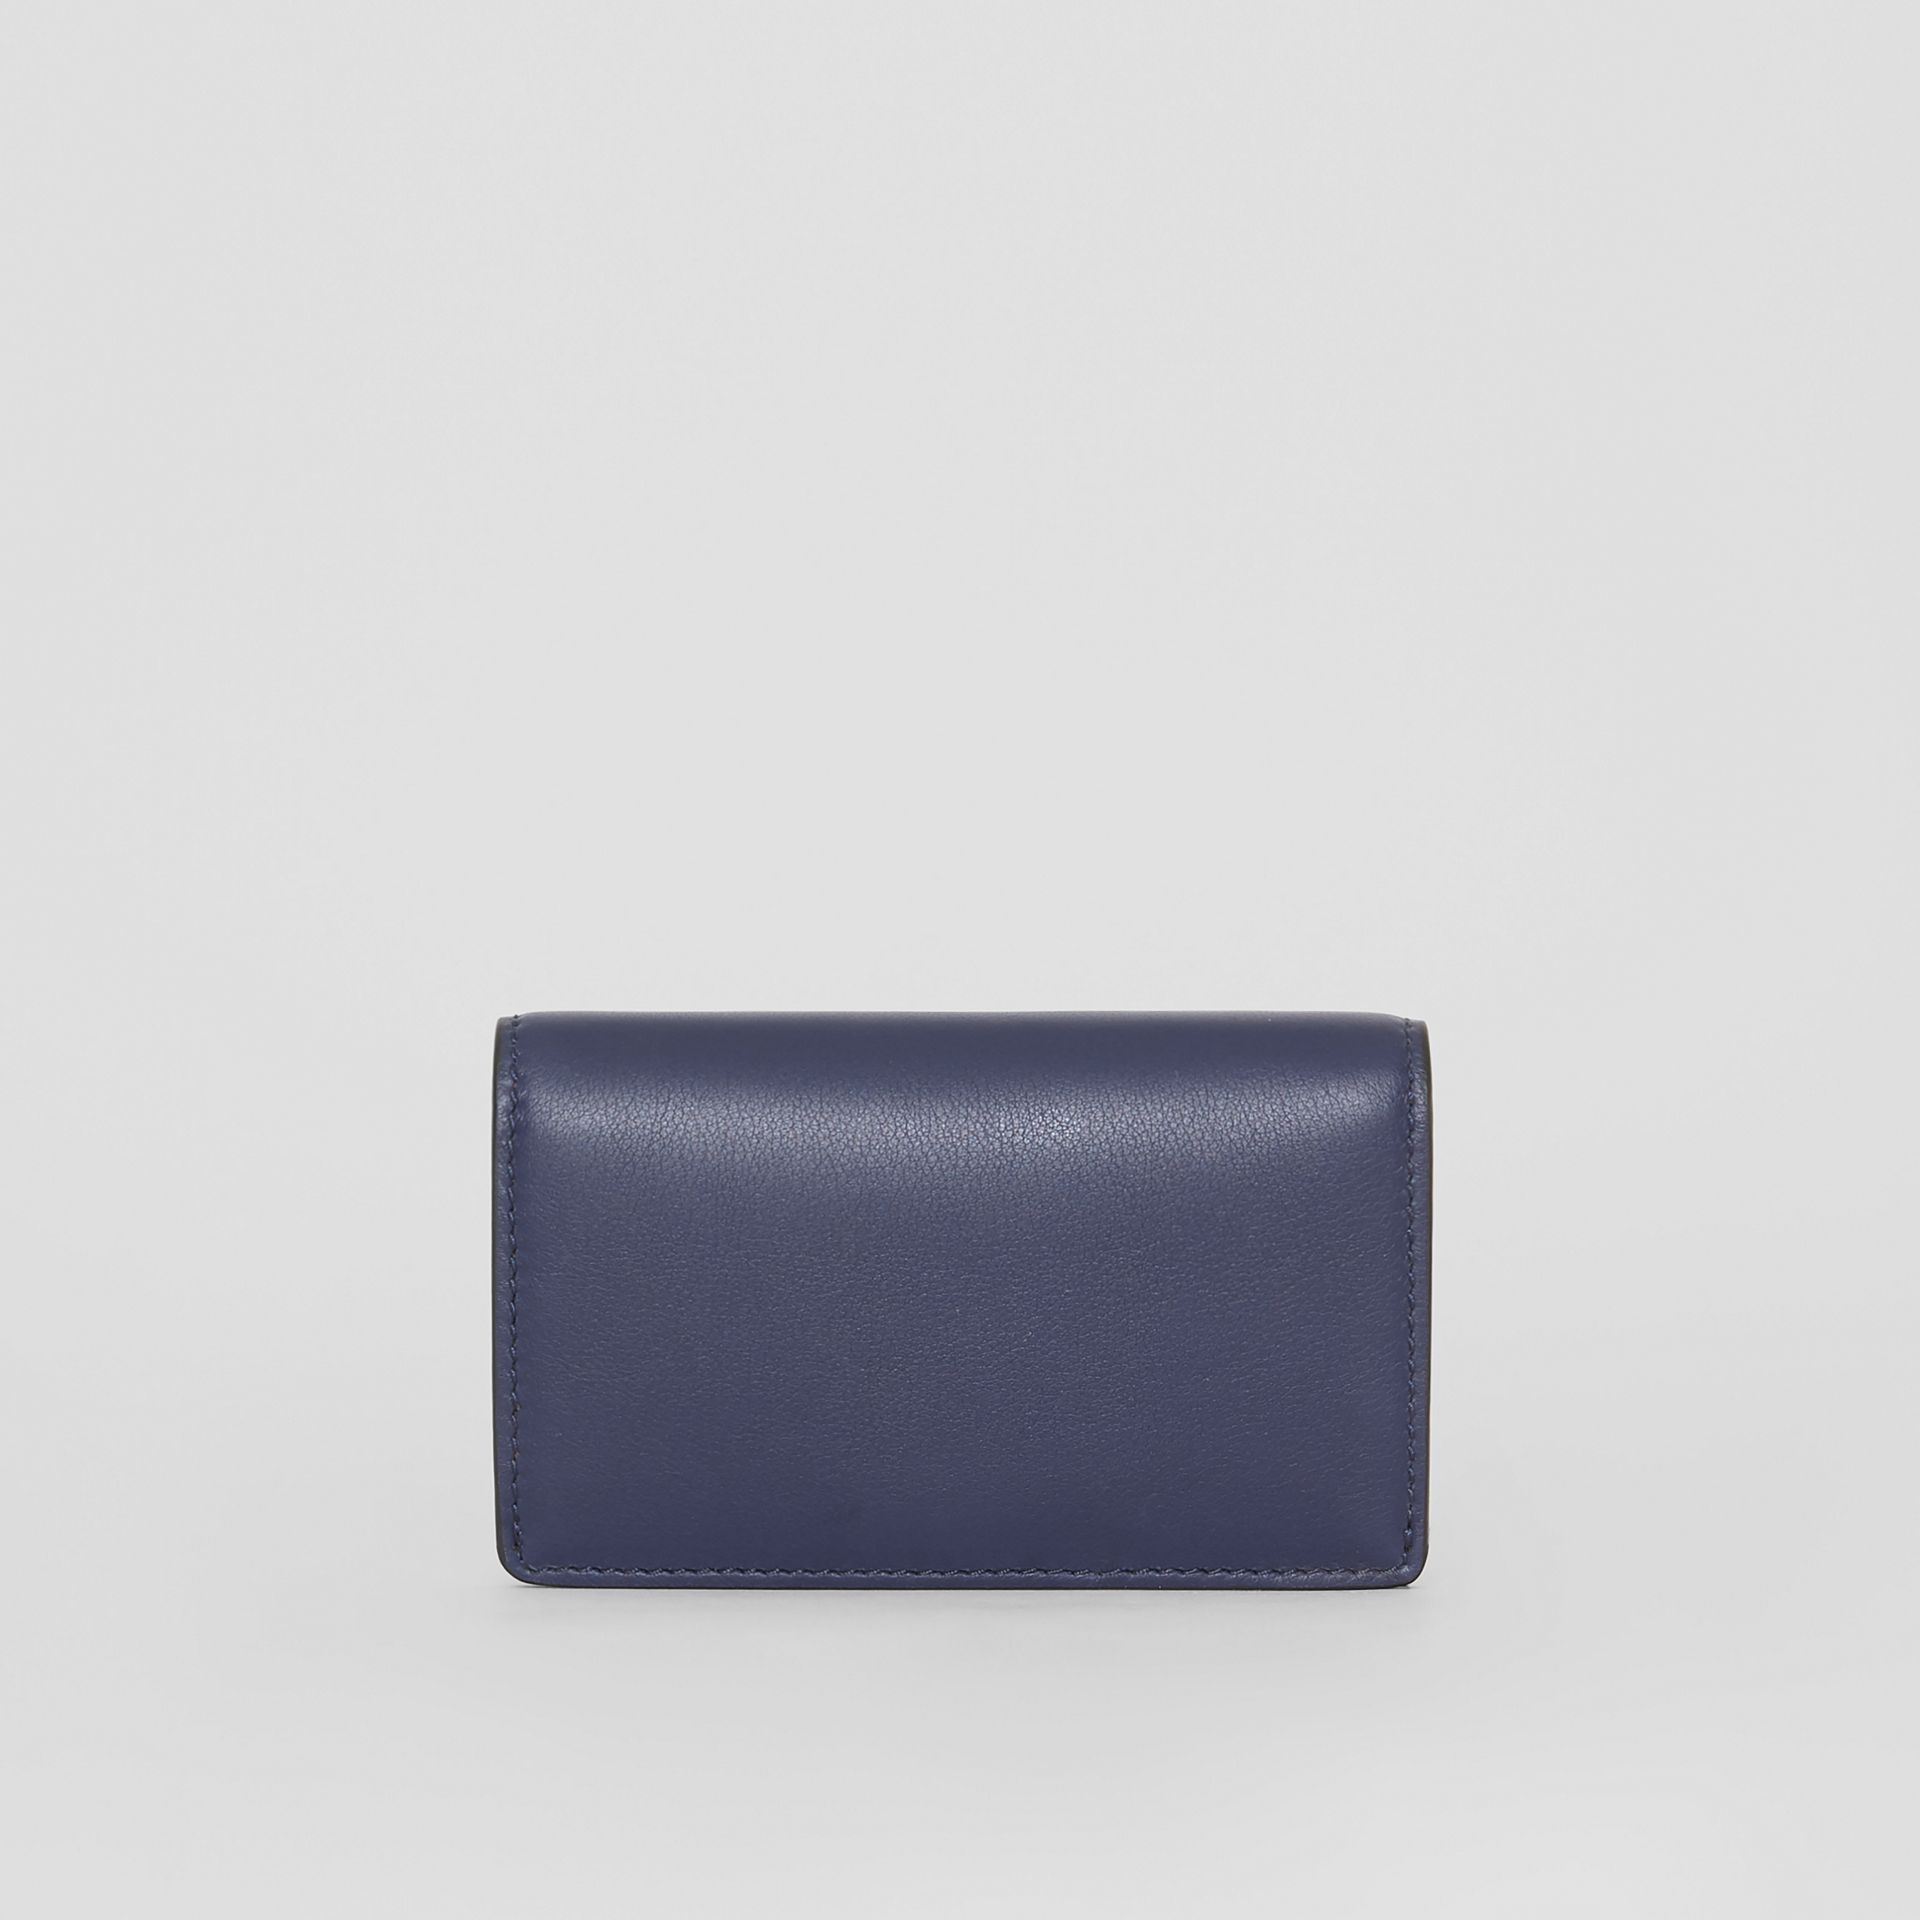 Small Embossed Crest Two-tone Leather Wallet in Regency Blue - Women | Burberry - gallery image 2